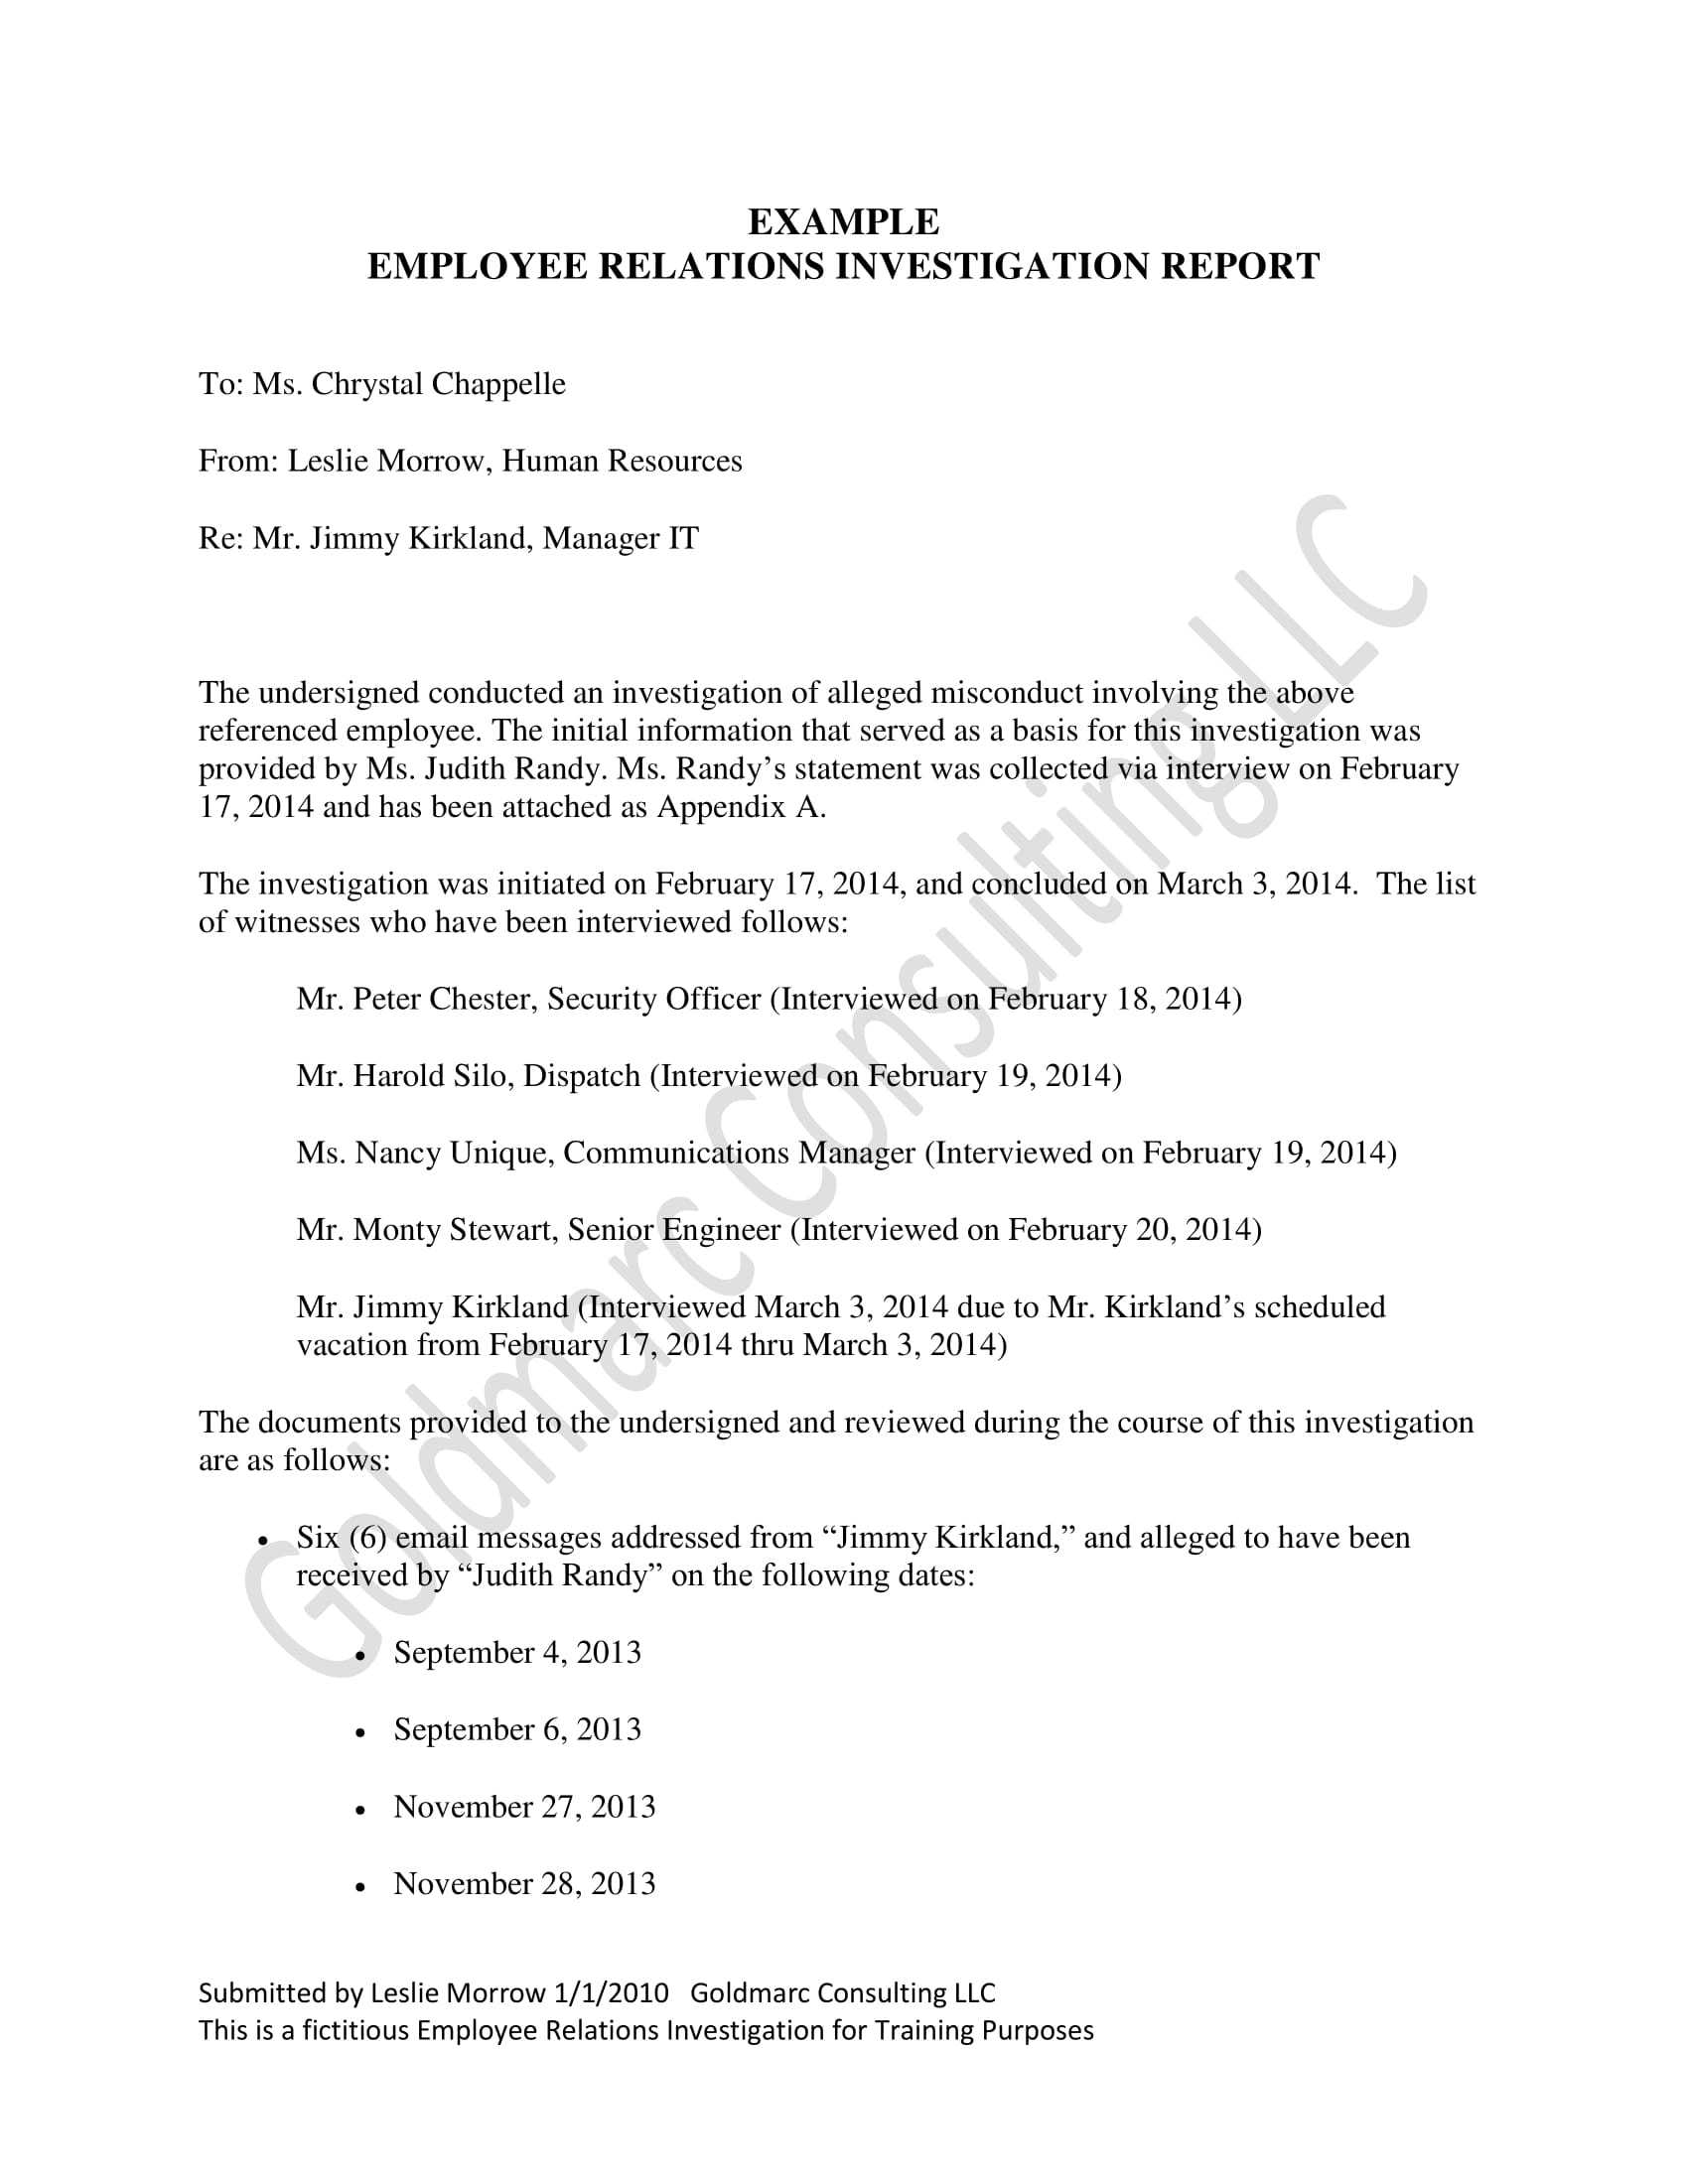 employee relations investigation report example 1